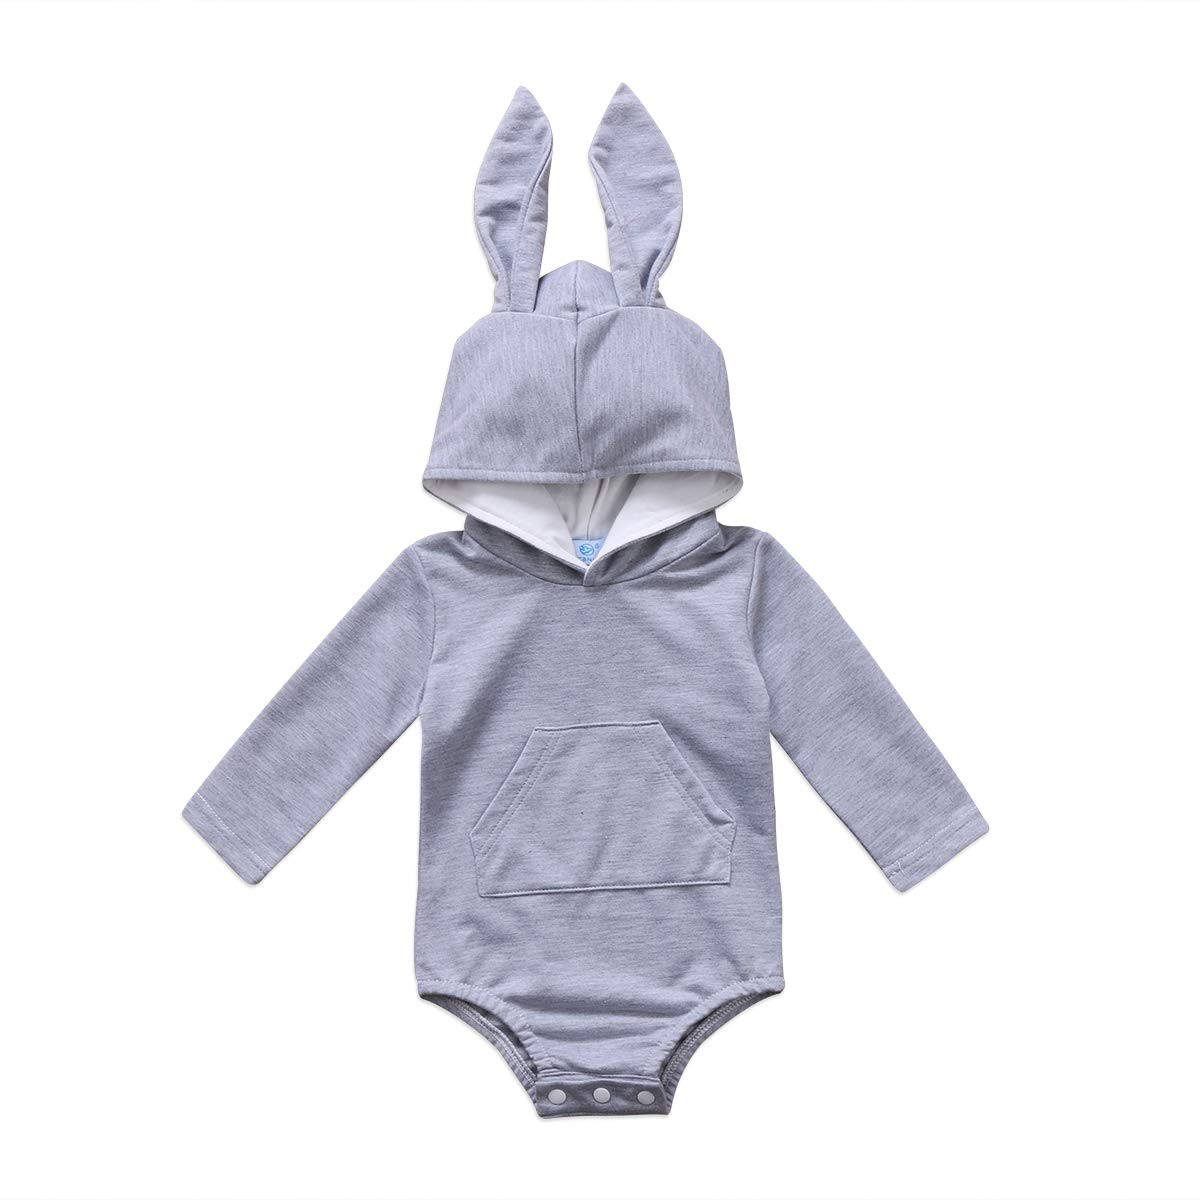 FEORJGP Newborn Infant Baby Girl Boy Long Sleeve Hooded Romper Kids Rabbit Bunny Clothes